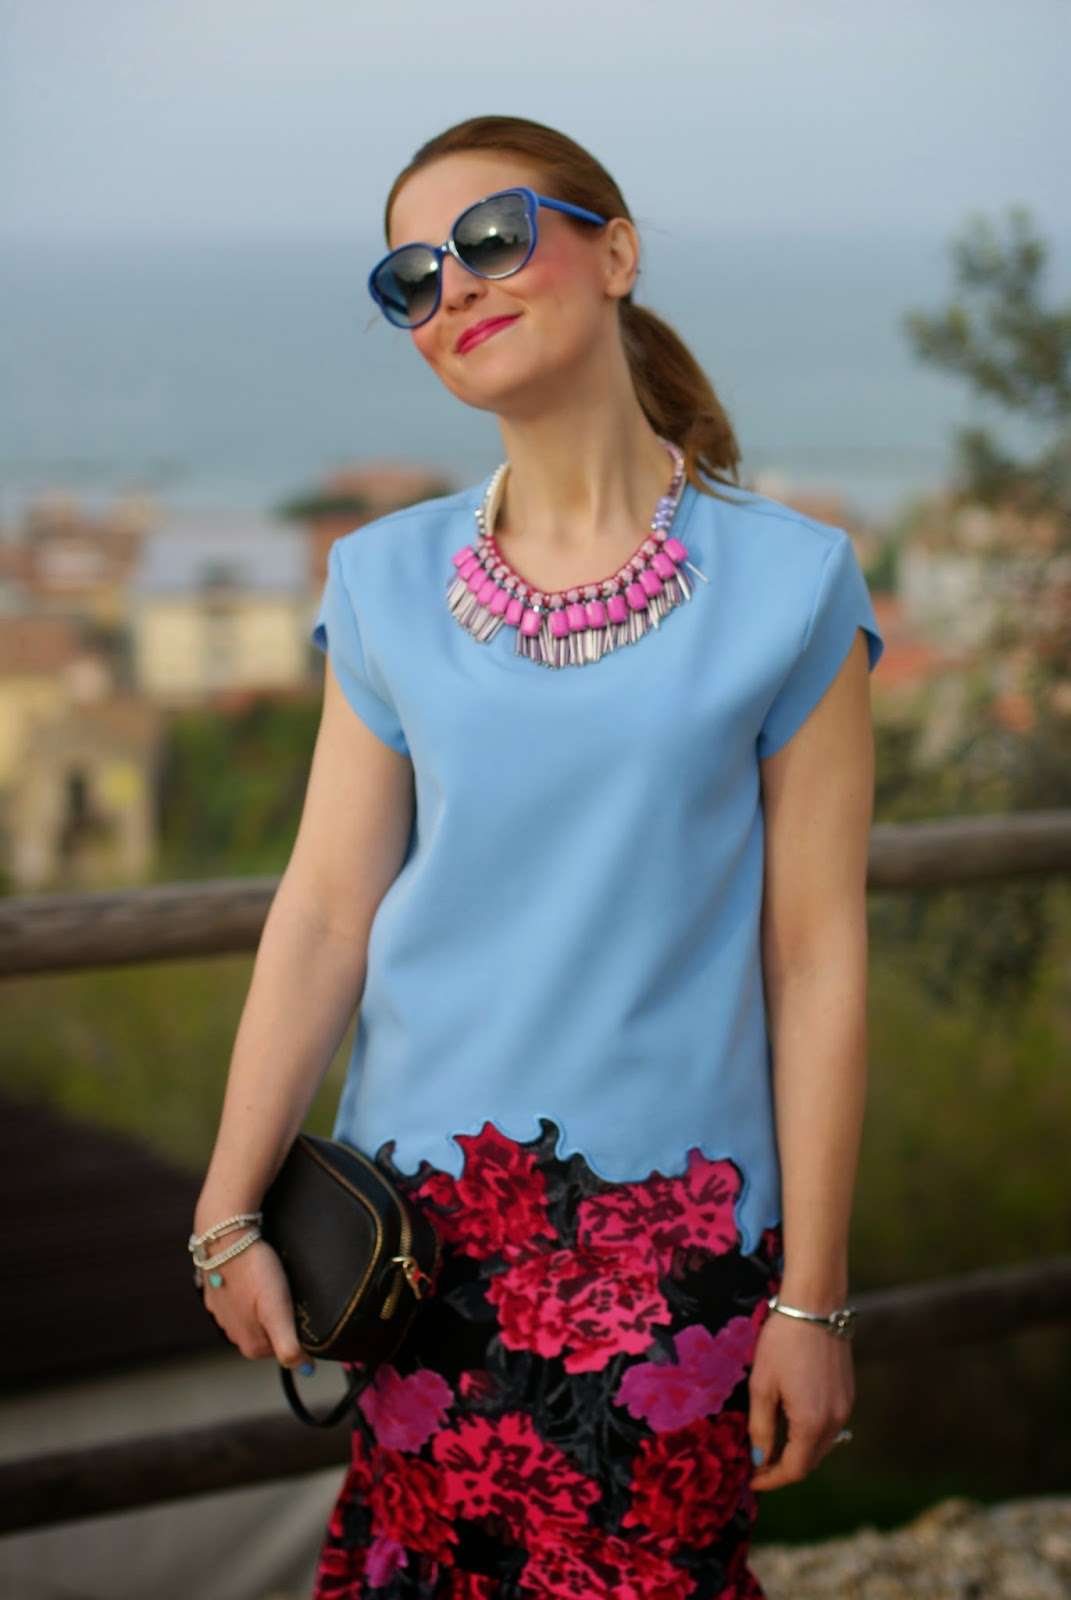 Marc by Marc Jacobs sunglasses, Sodini bijoux pink necklace, zara bonsoir bag, Fashion and Cookies, fashion blogger